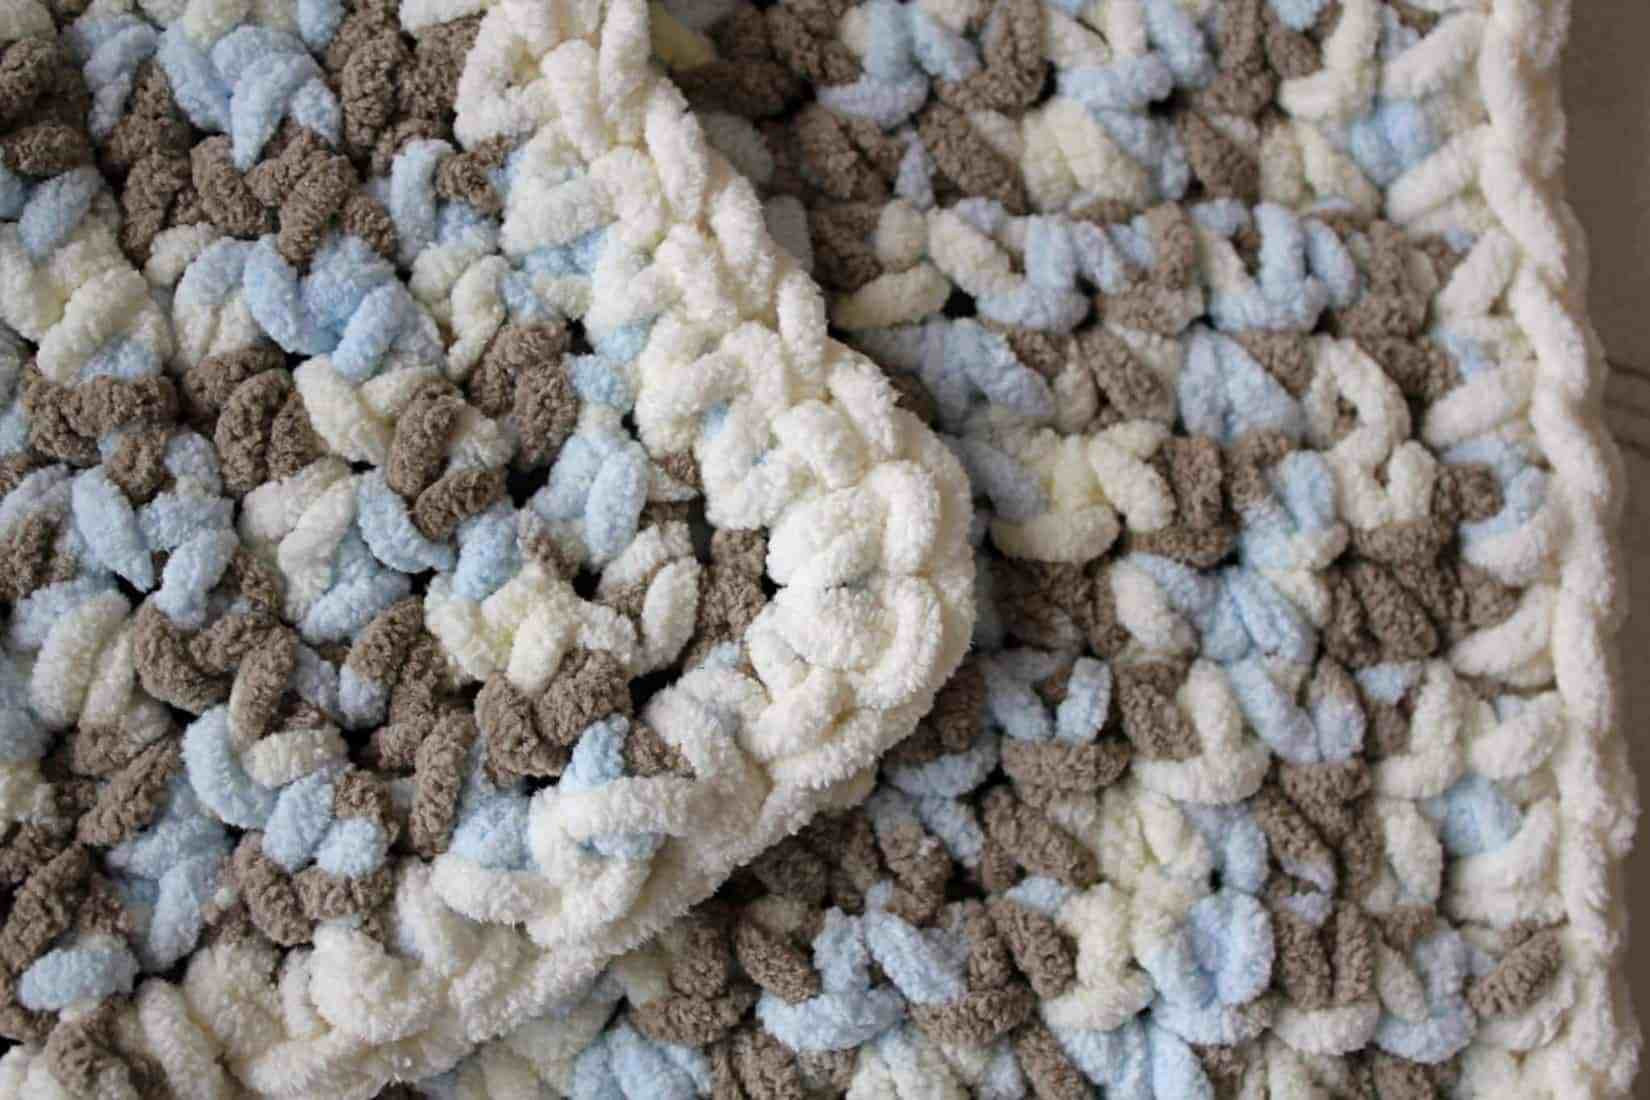 Bernat Crochet Patterns Best Of Diy Lux Crochet Baby Blanket Crave the Good Of Awesome 45 Photos Bernat Crochet Patterns